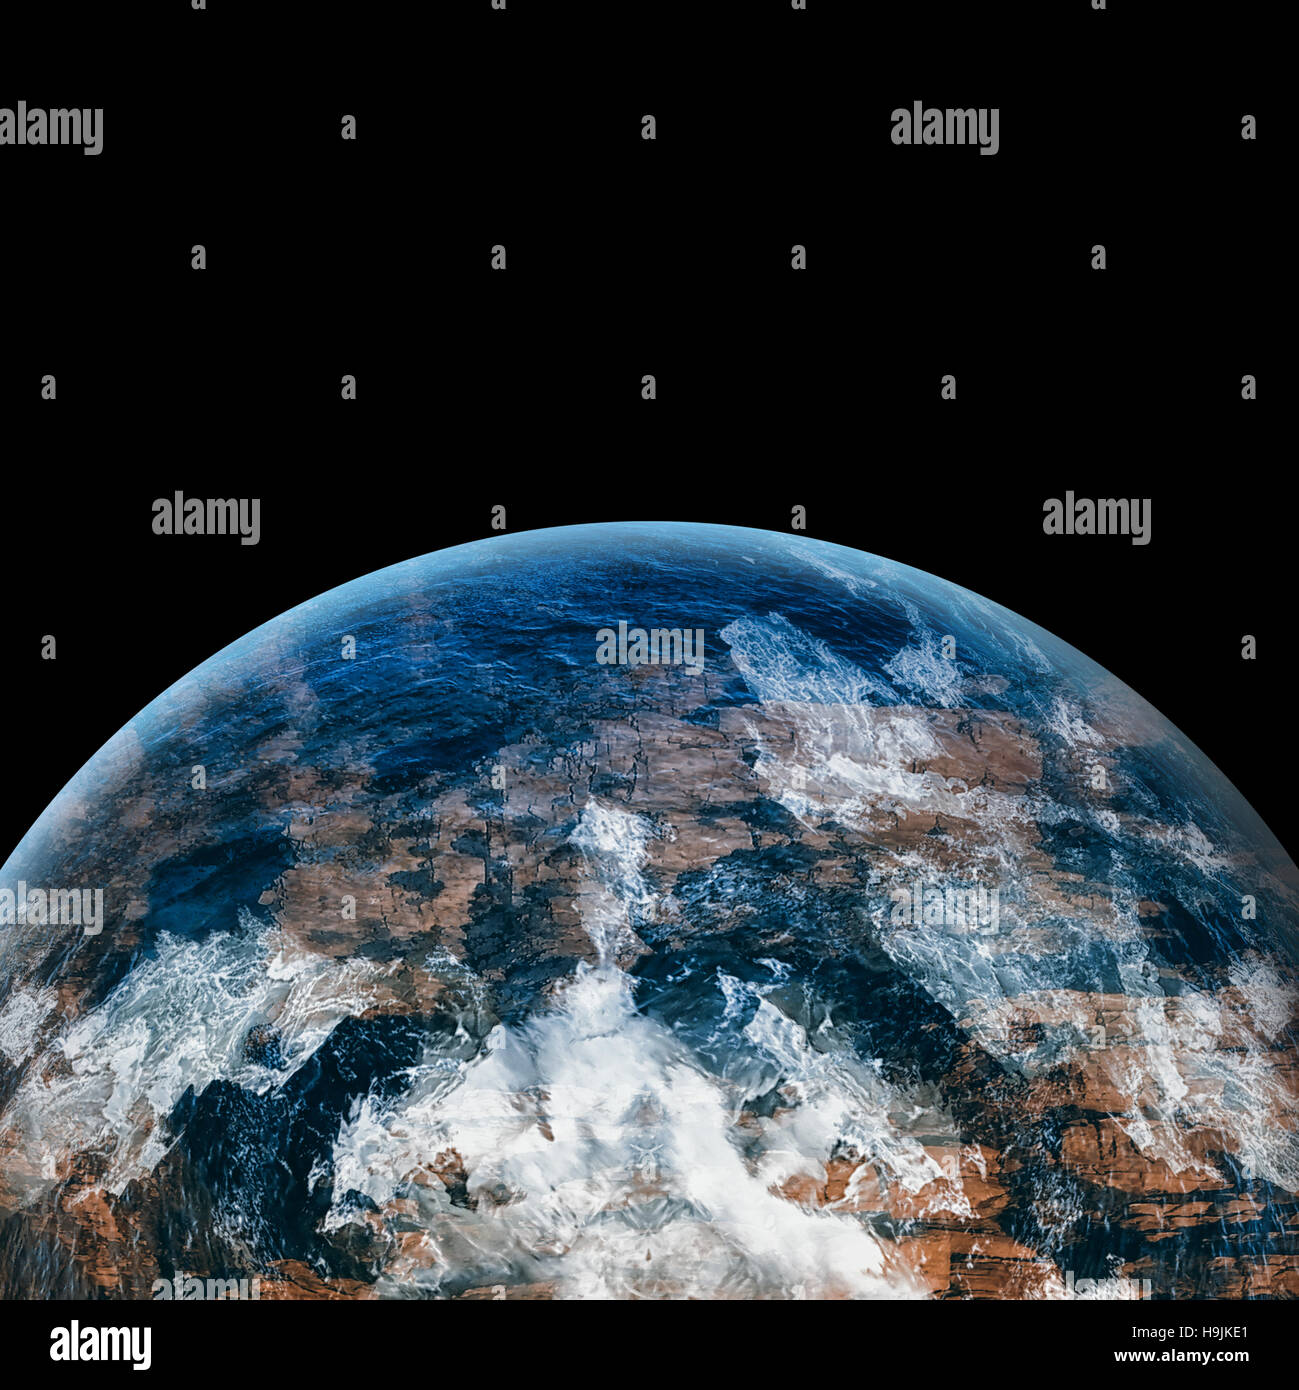 Digitally generated image of earth - Stock Image